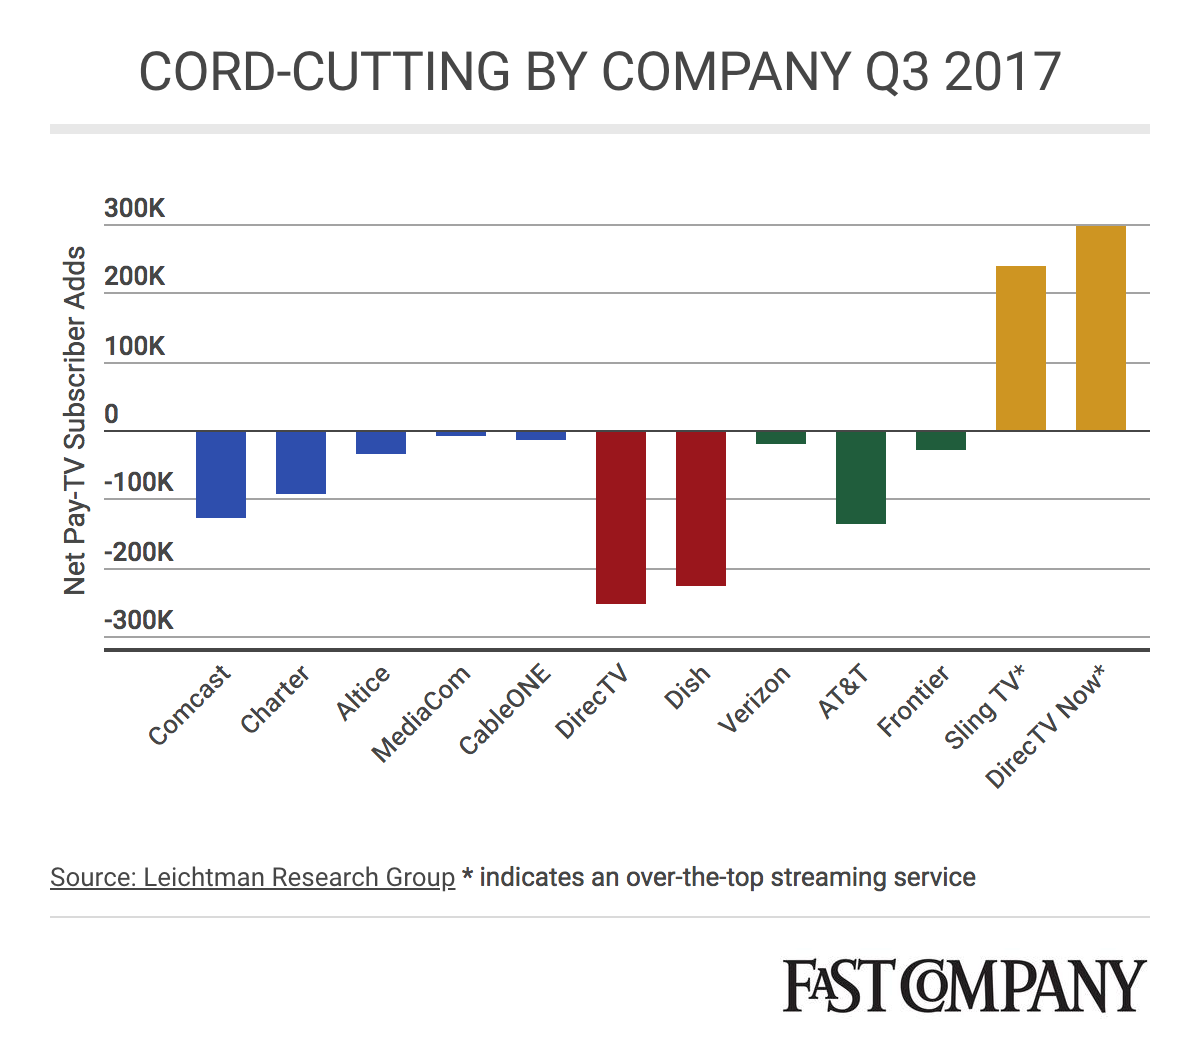 chart of cord-cutting by company Q3 2017